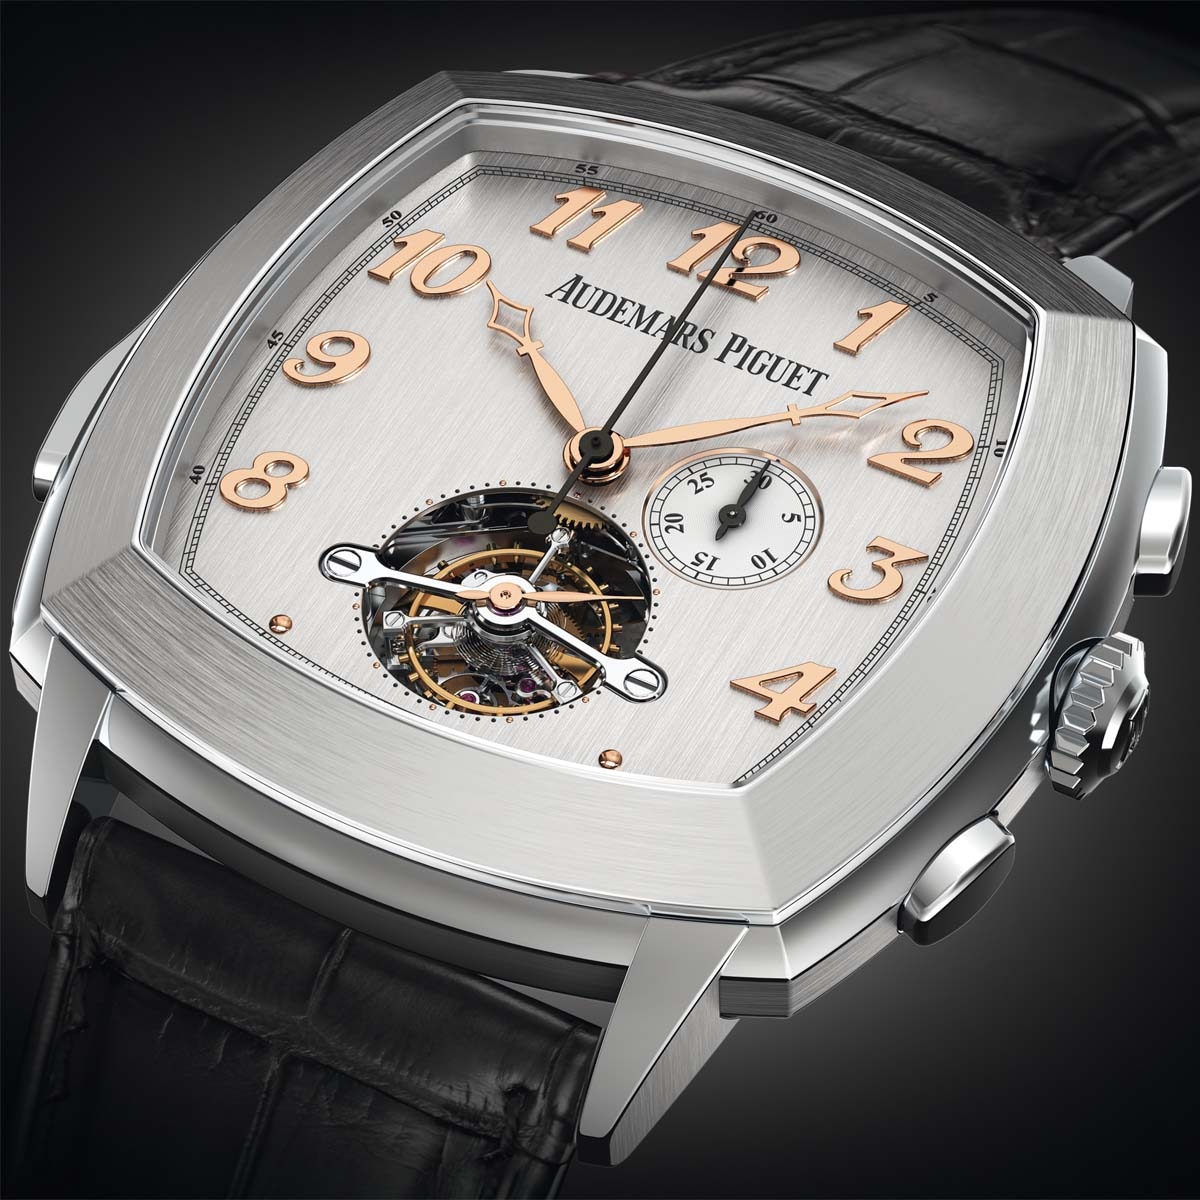 Audemars Piguet Tradition Minute Repeater Tourbillon Chronograph Replica Watches 01